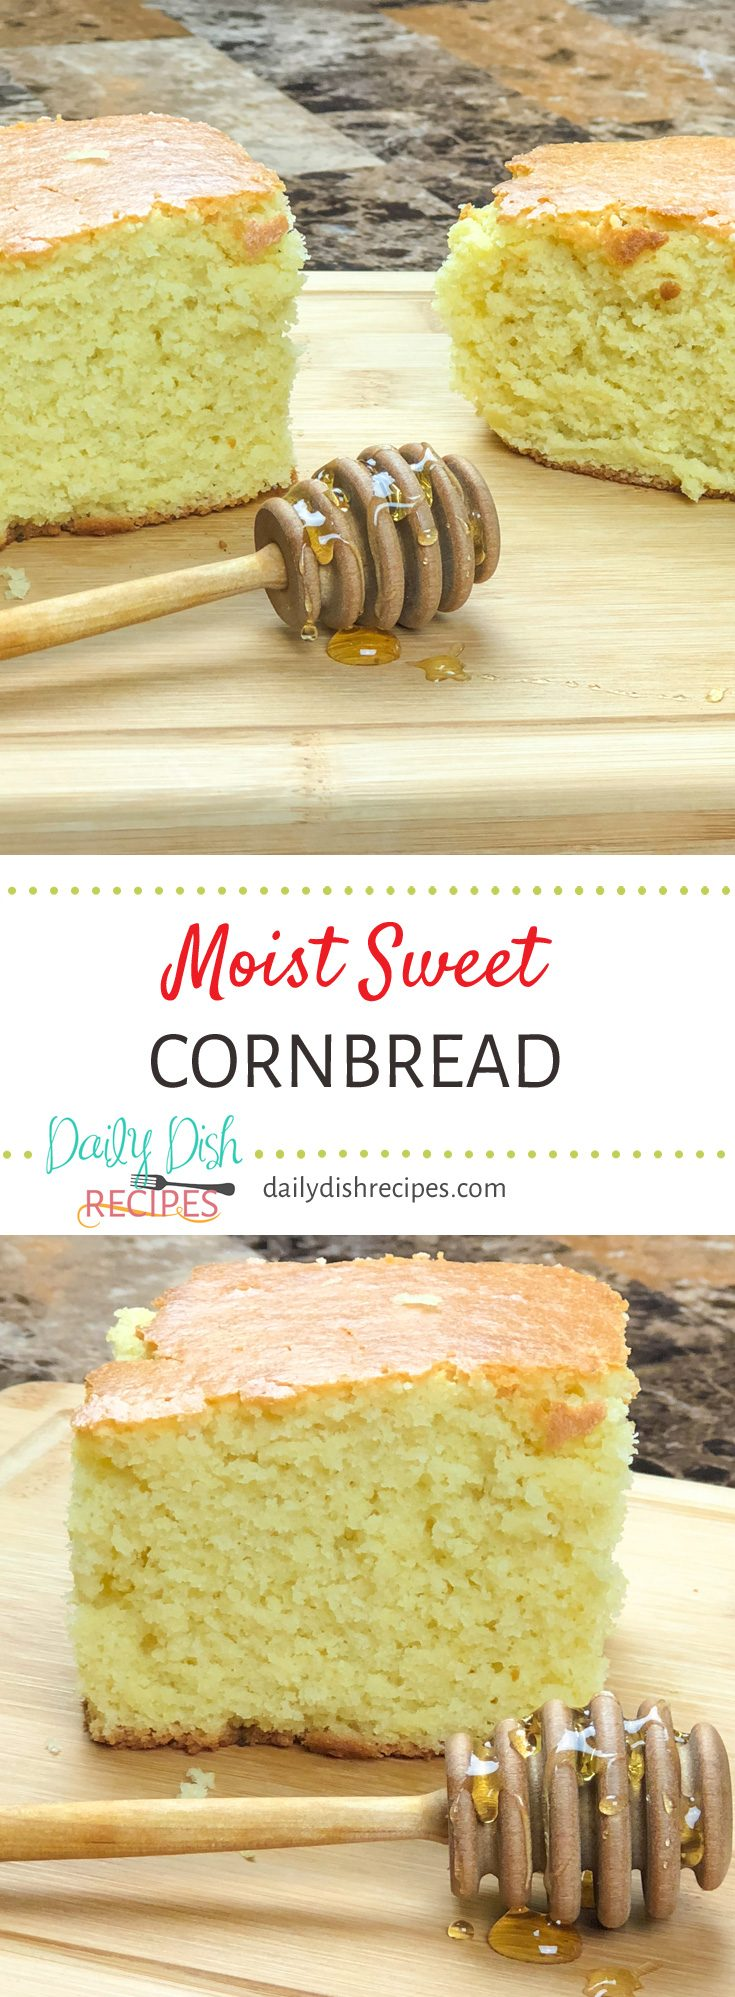 This award winning sweet cornbread recipe is full of moist sweet flavor. It really is the perfect cornbread!